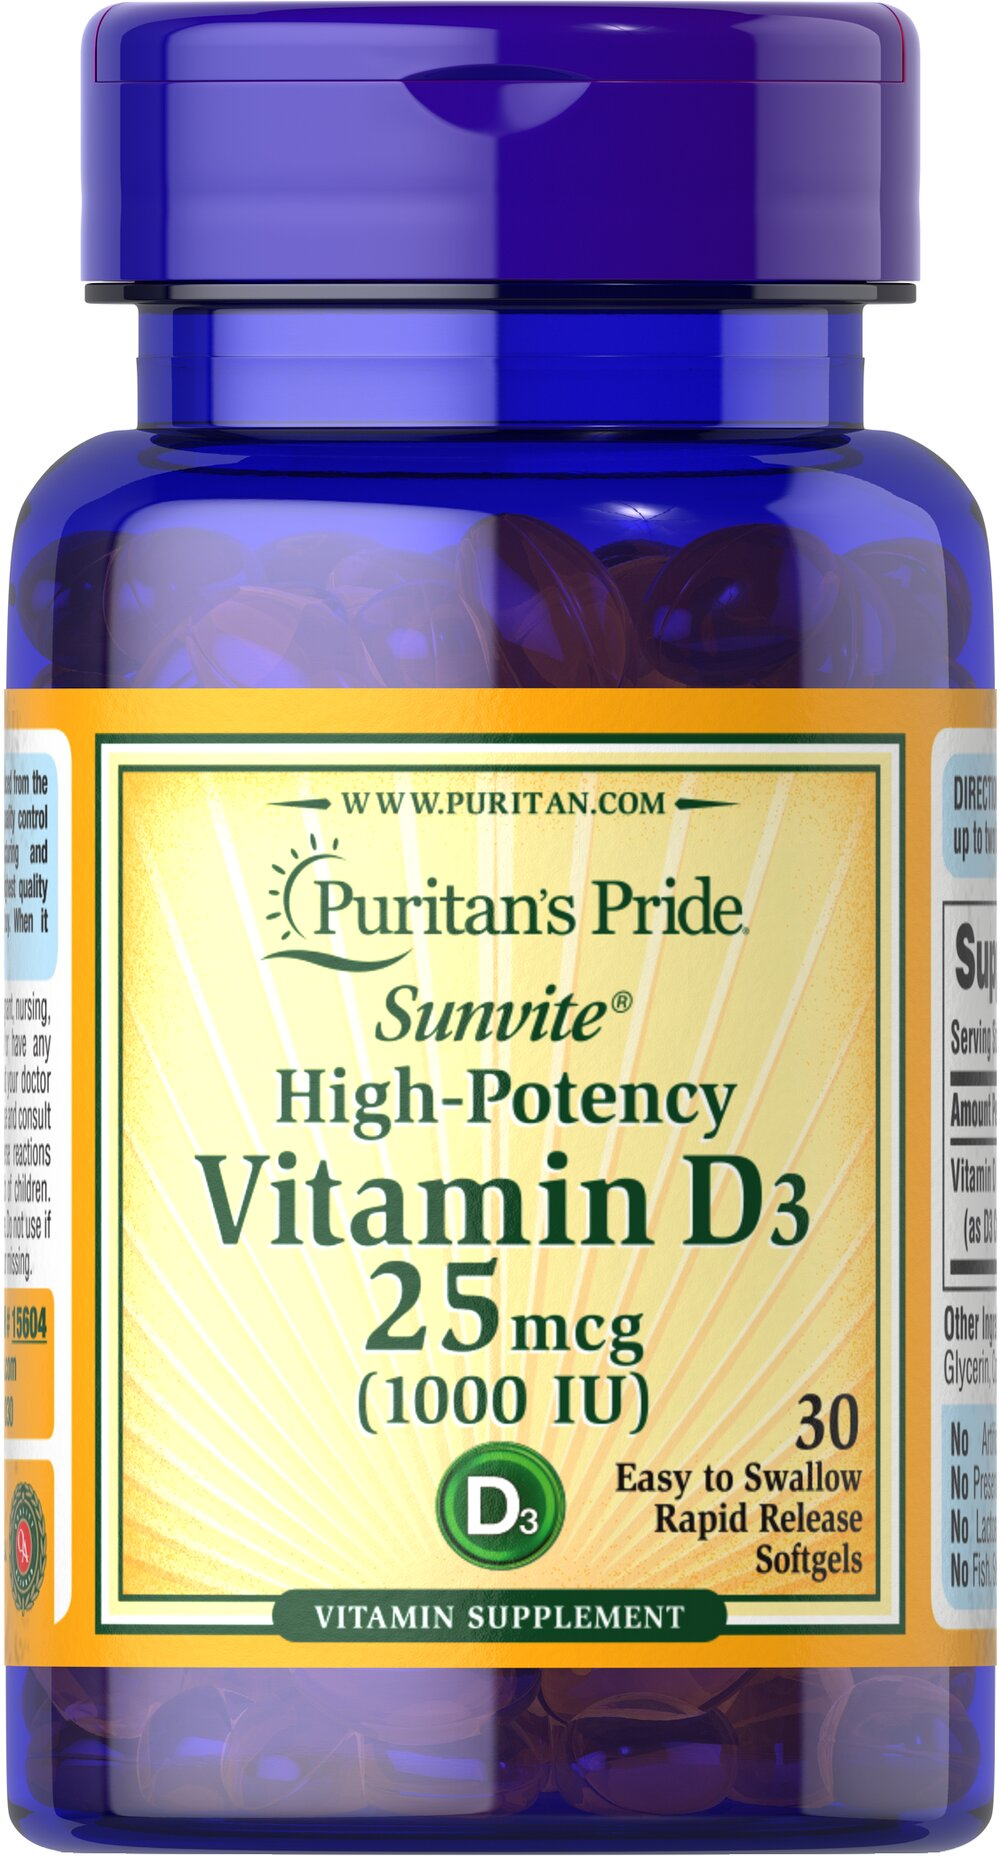 "Vitamin D3 1000 IU <p>Sample the supplement that has been all over the news the past two years – Vitamin D!</p> <p><span></span> Vitamin D is known for helping build <a href=""/bone-health-241?searchterm=bone%20health&rdcnt=1"">bone health</a> , plus it supports a healthy immune system as well as breast and colon health.*</p> 30 Rapid Release Softgels 1000 IU $0.99"